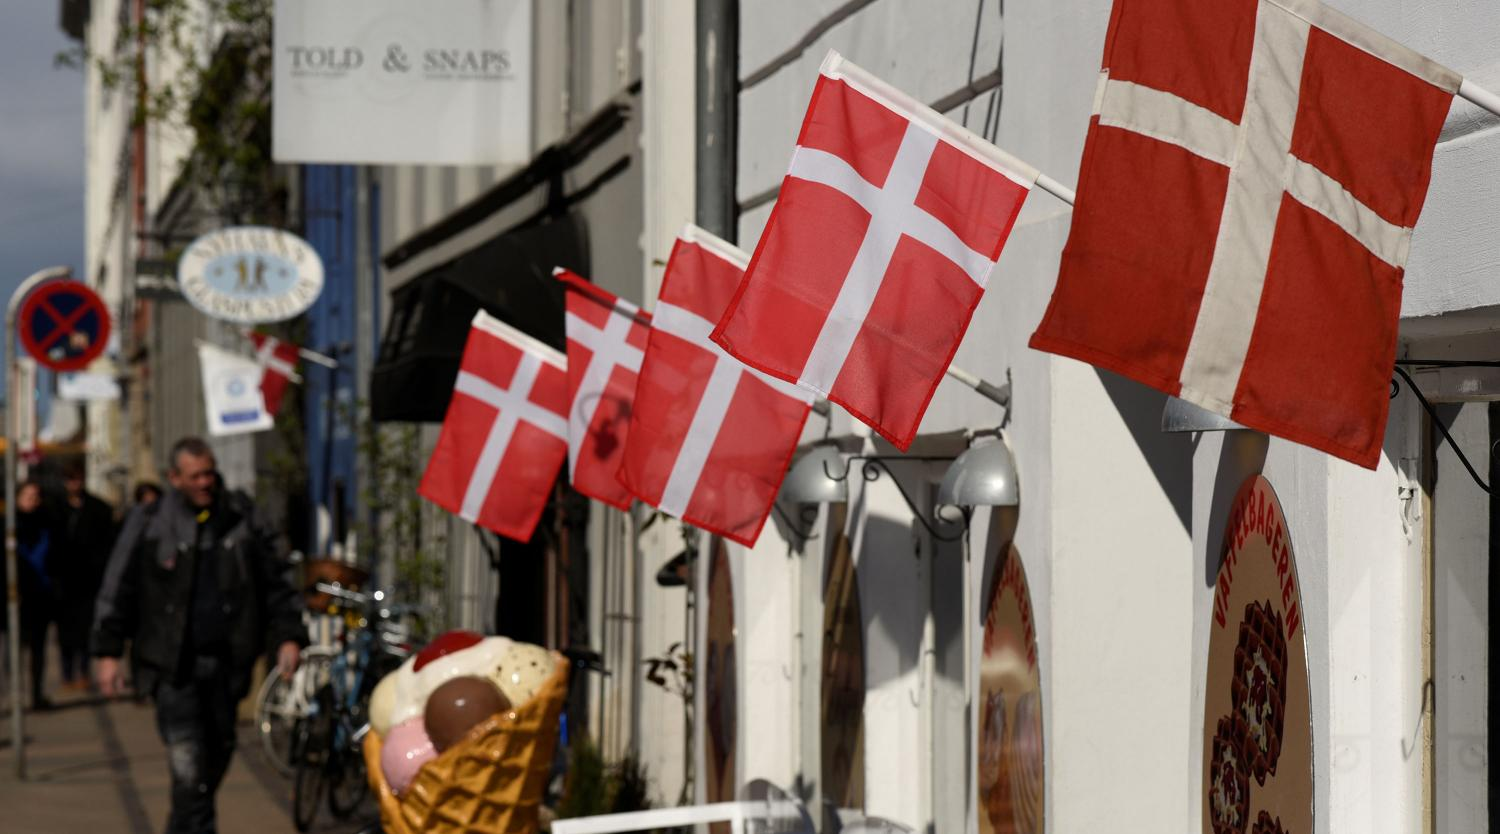 Danish flags are pictured outside a cafe at the famous landmark Nyhavn in Copenhagen, Denmark April 18, 2017.